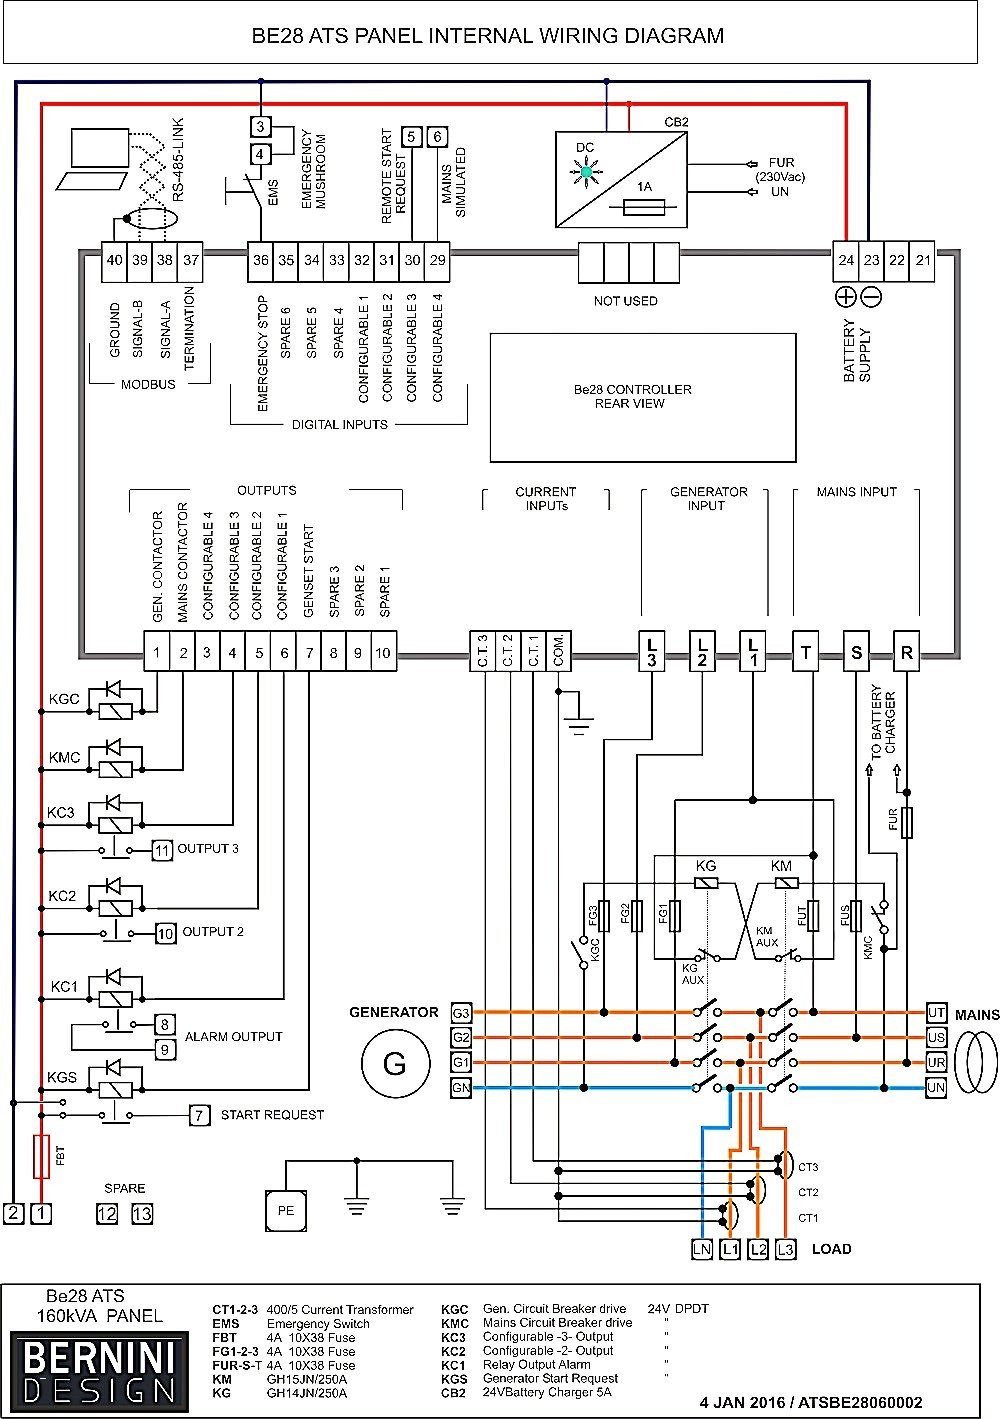 asco wiring diagram wheel horse lawn tractor 7000 series great installation of ats collection sample rh faceitsalon com line